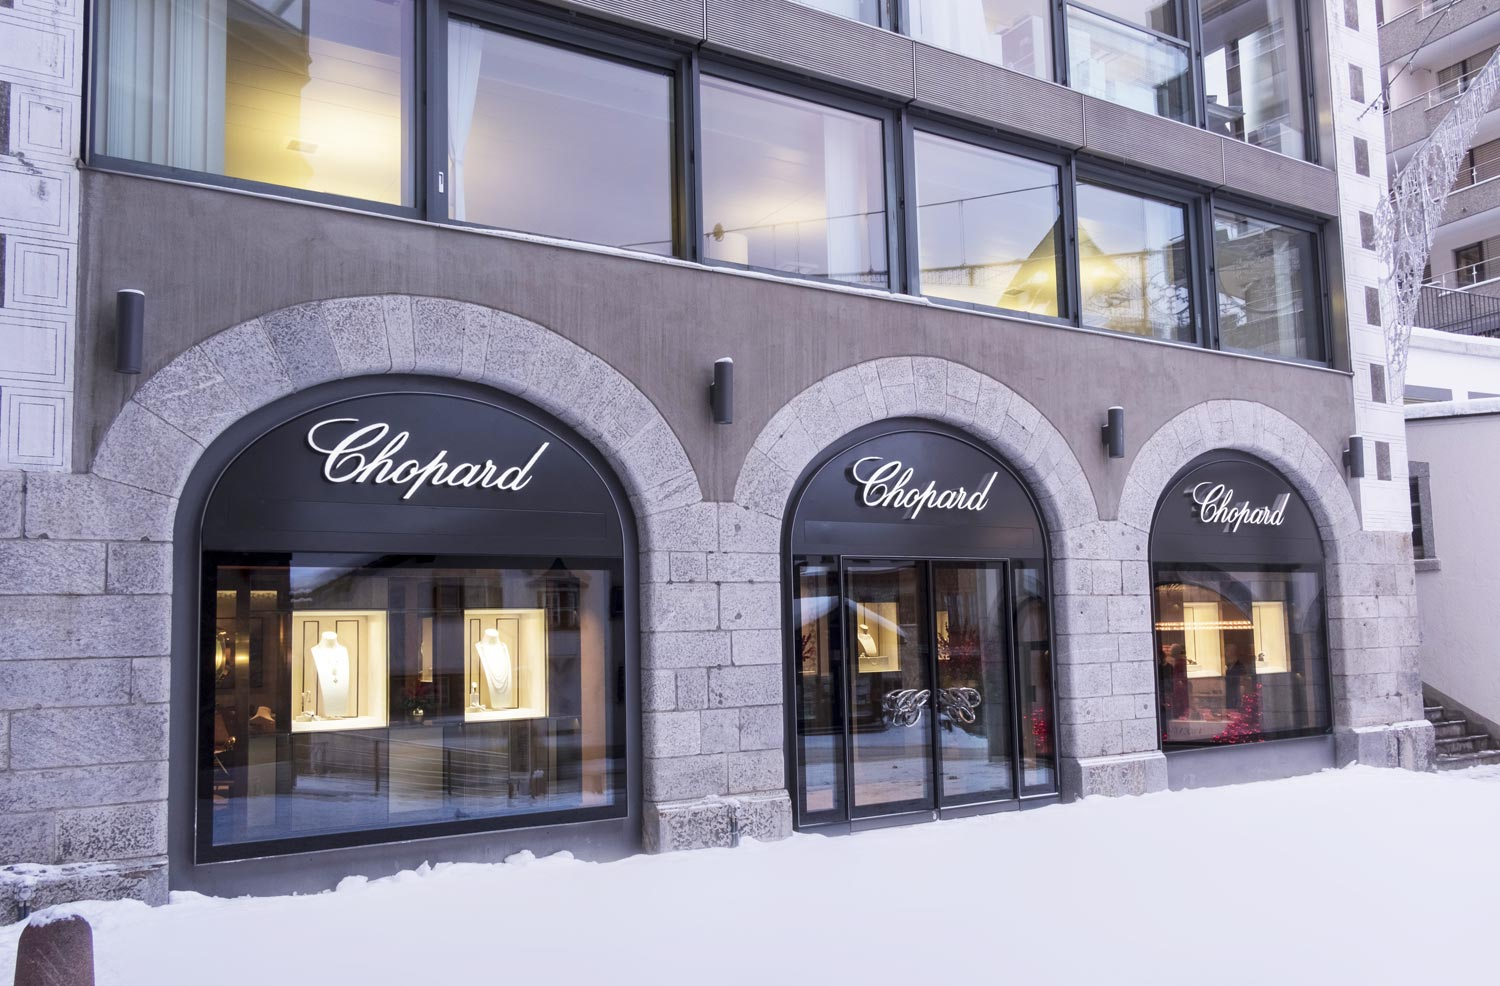 Chopard Supports it's Swiss Heritage with a New Boutique in St. Moritz 4